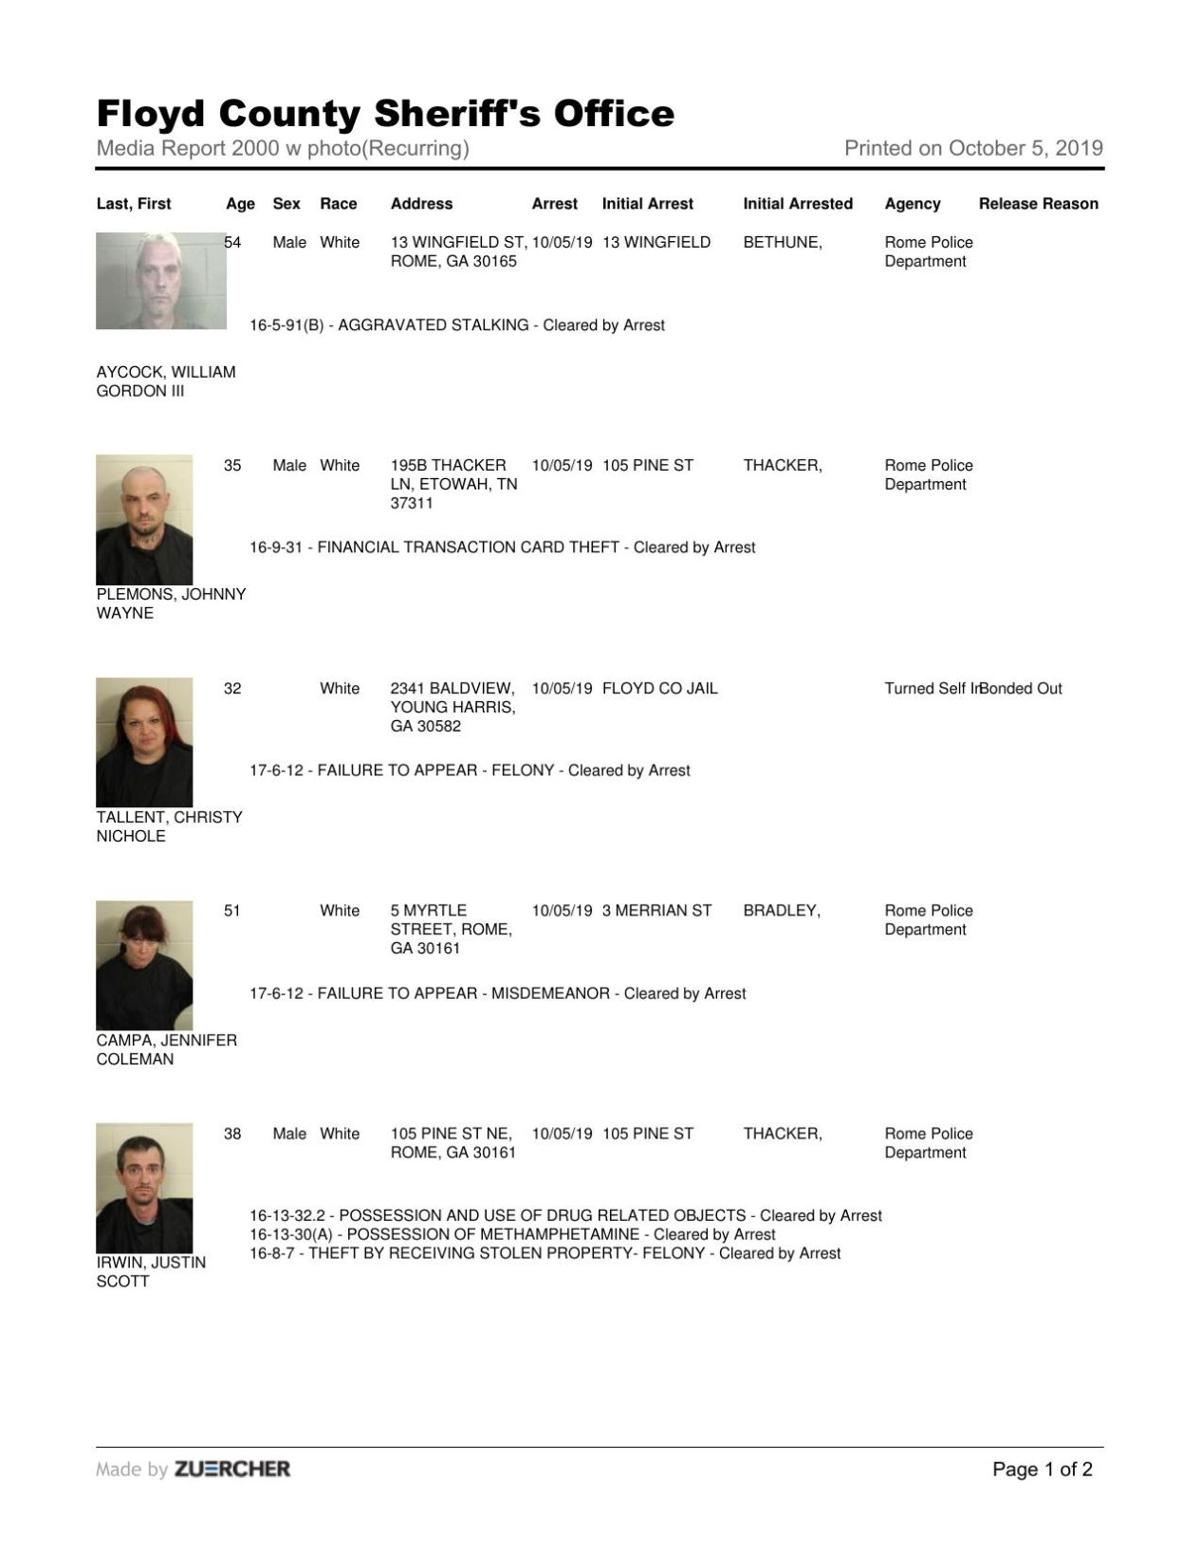 Floyd County Jail report for Saturday, Oct. 5